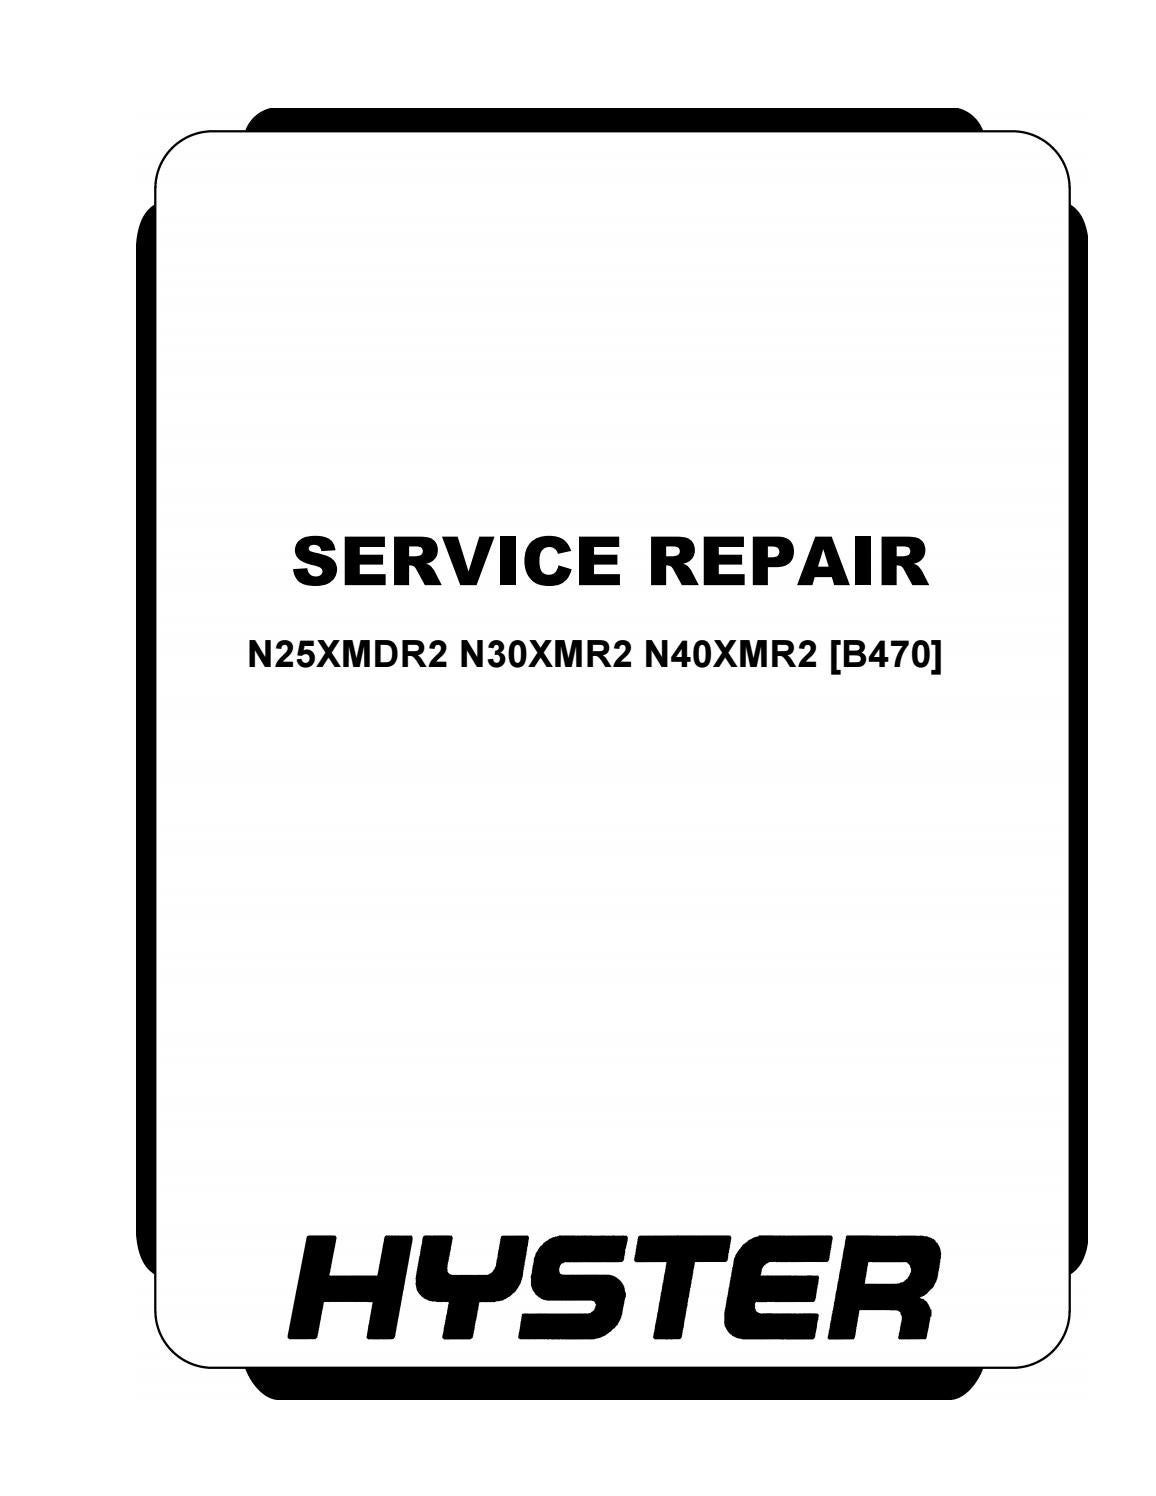 Hyster B470 (N25XMDR2) Forklift Service Repair Manual by